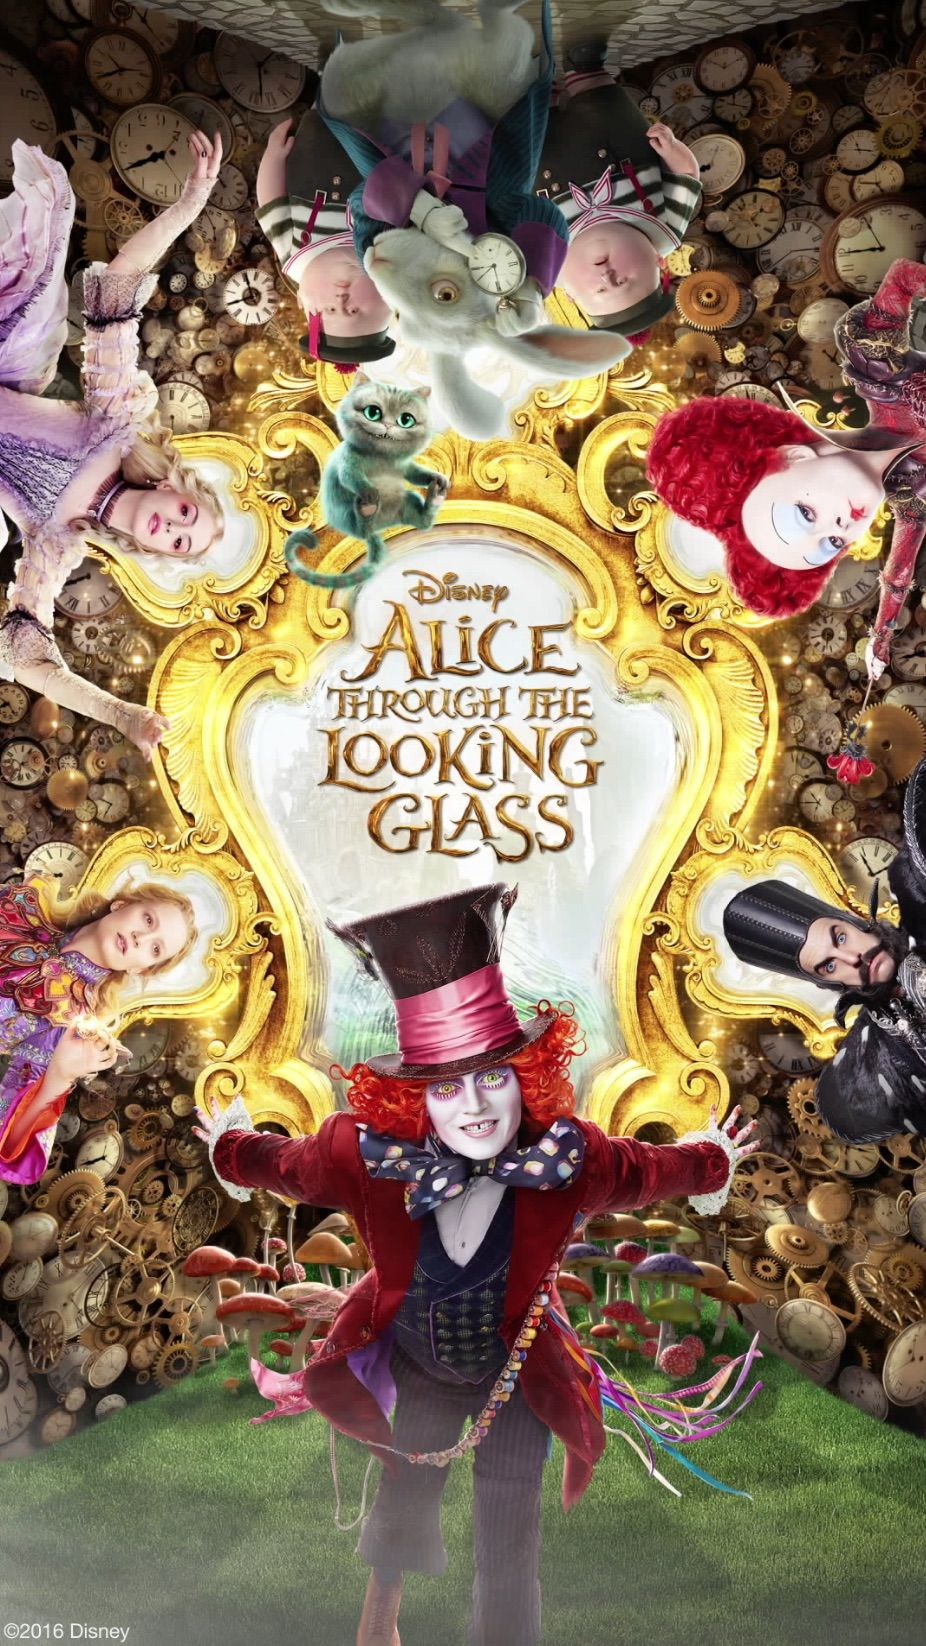 Time Is Relative This New Alice Through The Looking Glass Poster